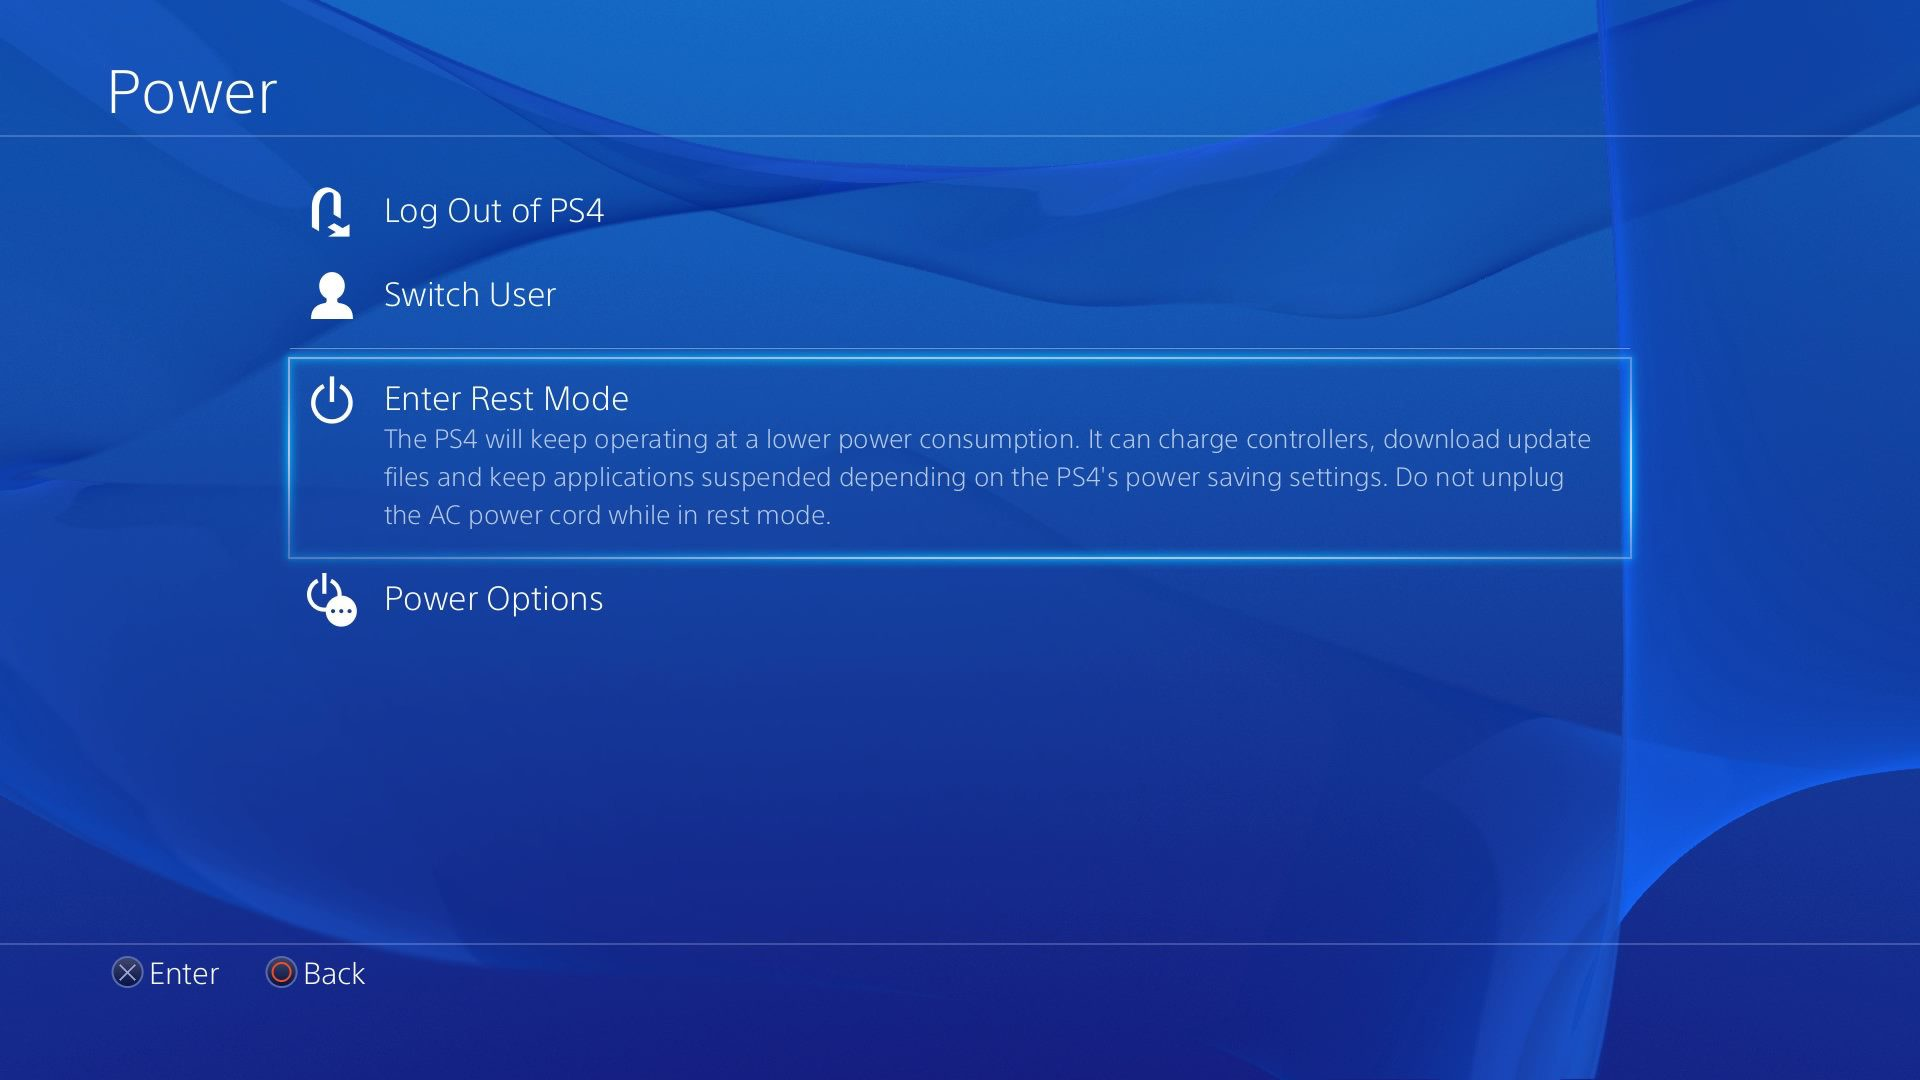 ps4 will not download update in rest mode